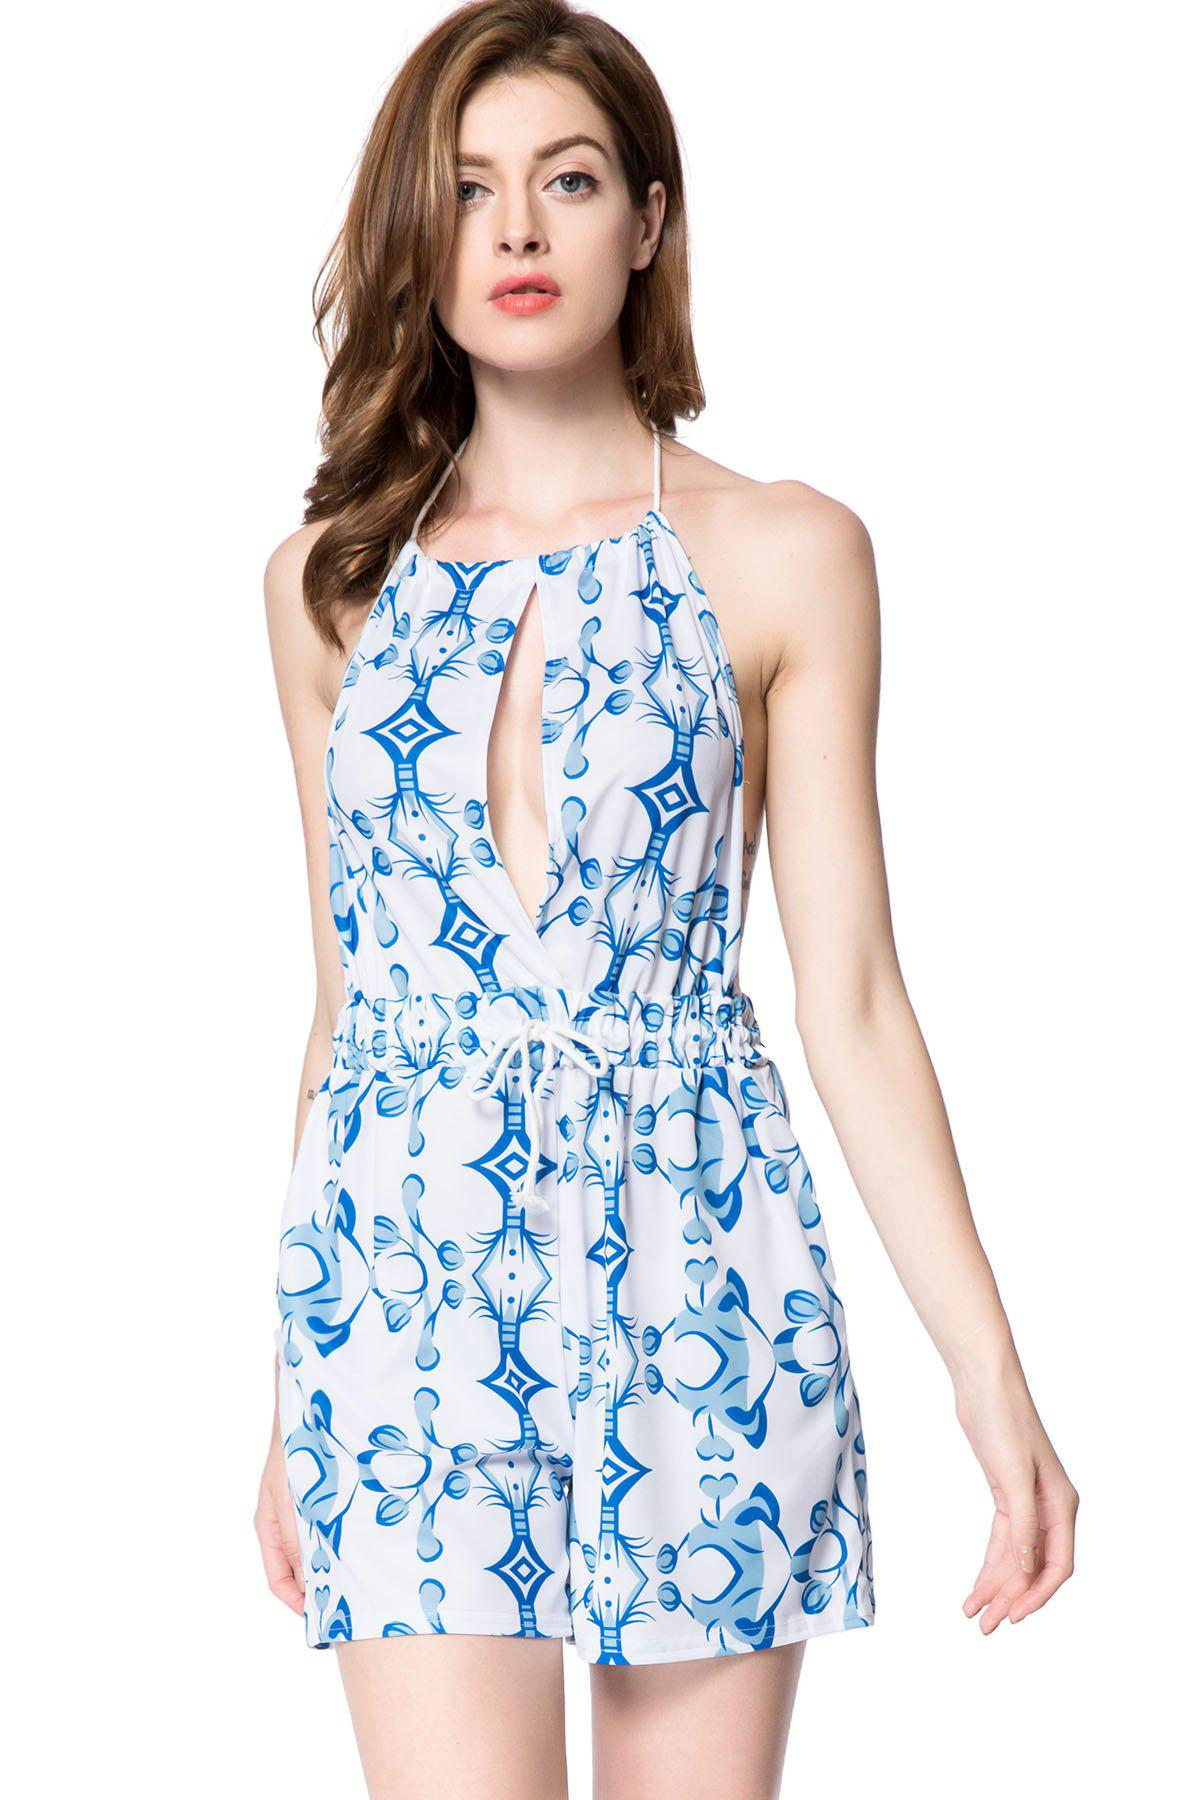 Sexy Halter Sleeveless Backless Hollow Out Printed Women's Romper - WHITE L